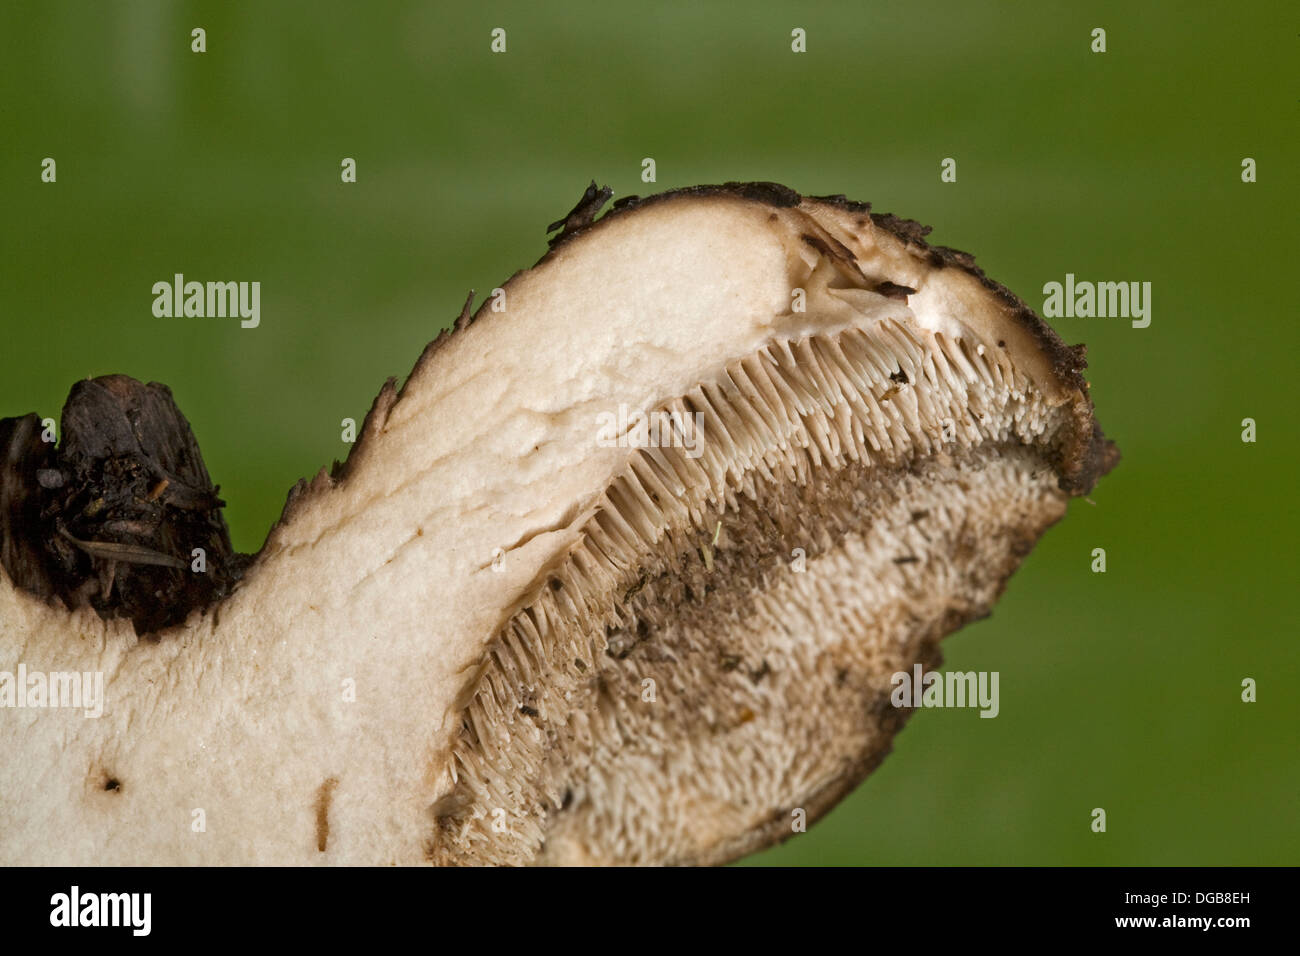 A wild mushroom with teeth or spines instead of gills, beneath the cap, a toothed mushroom - Stock Image